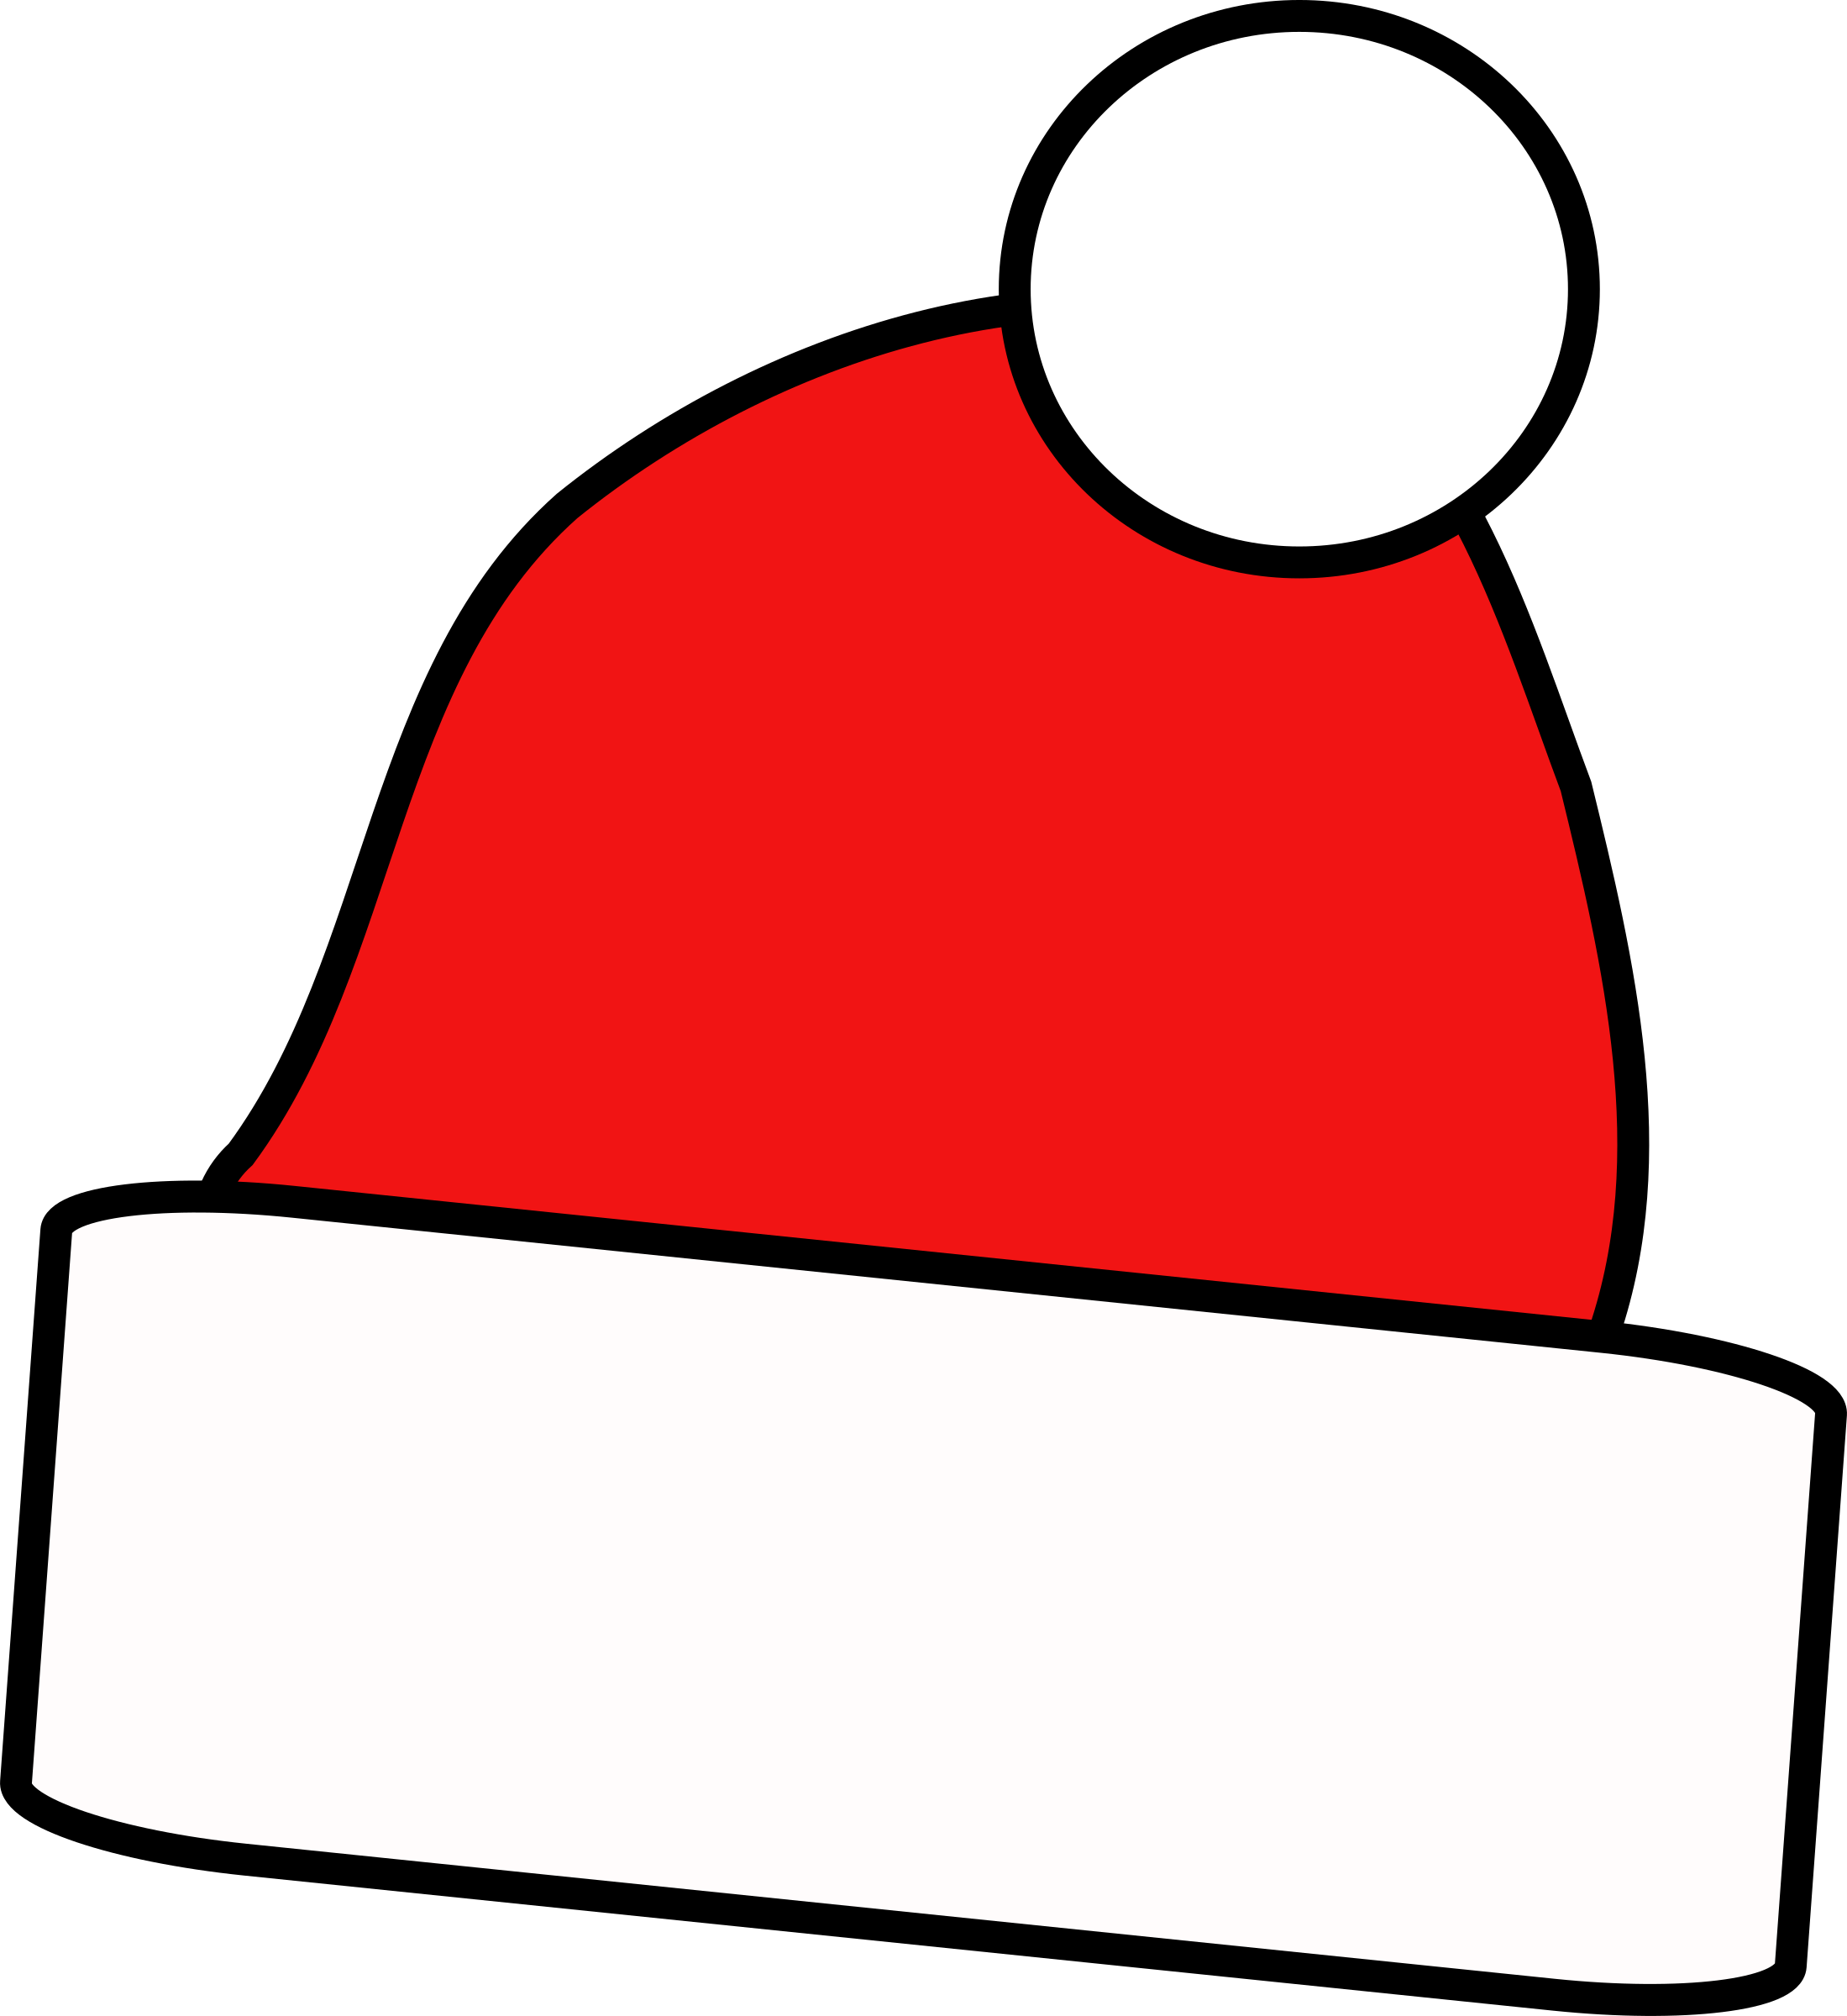 Holly clipart easy. Christmas hat big image